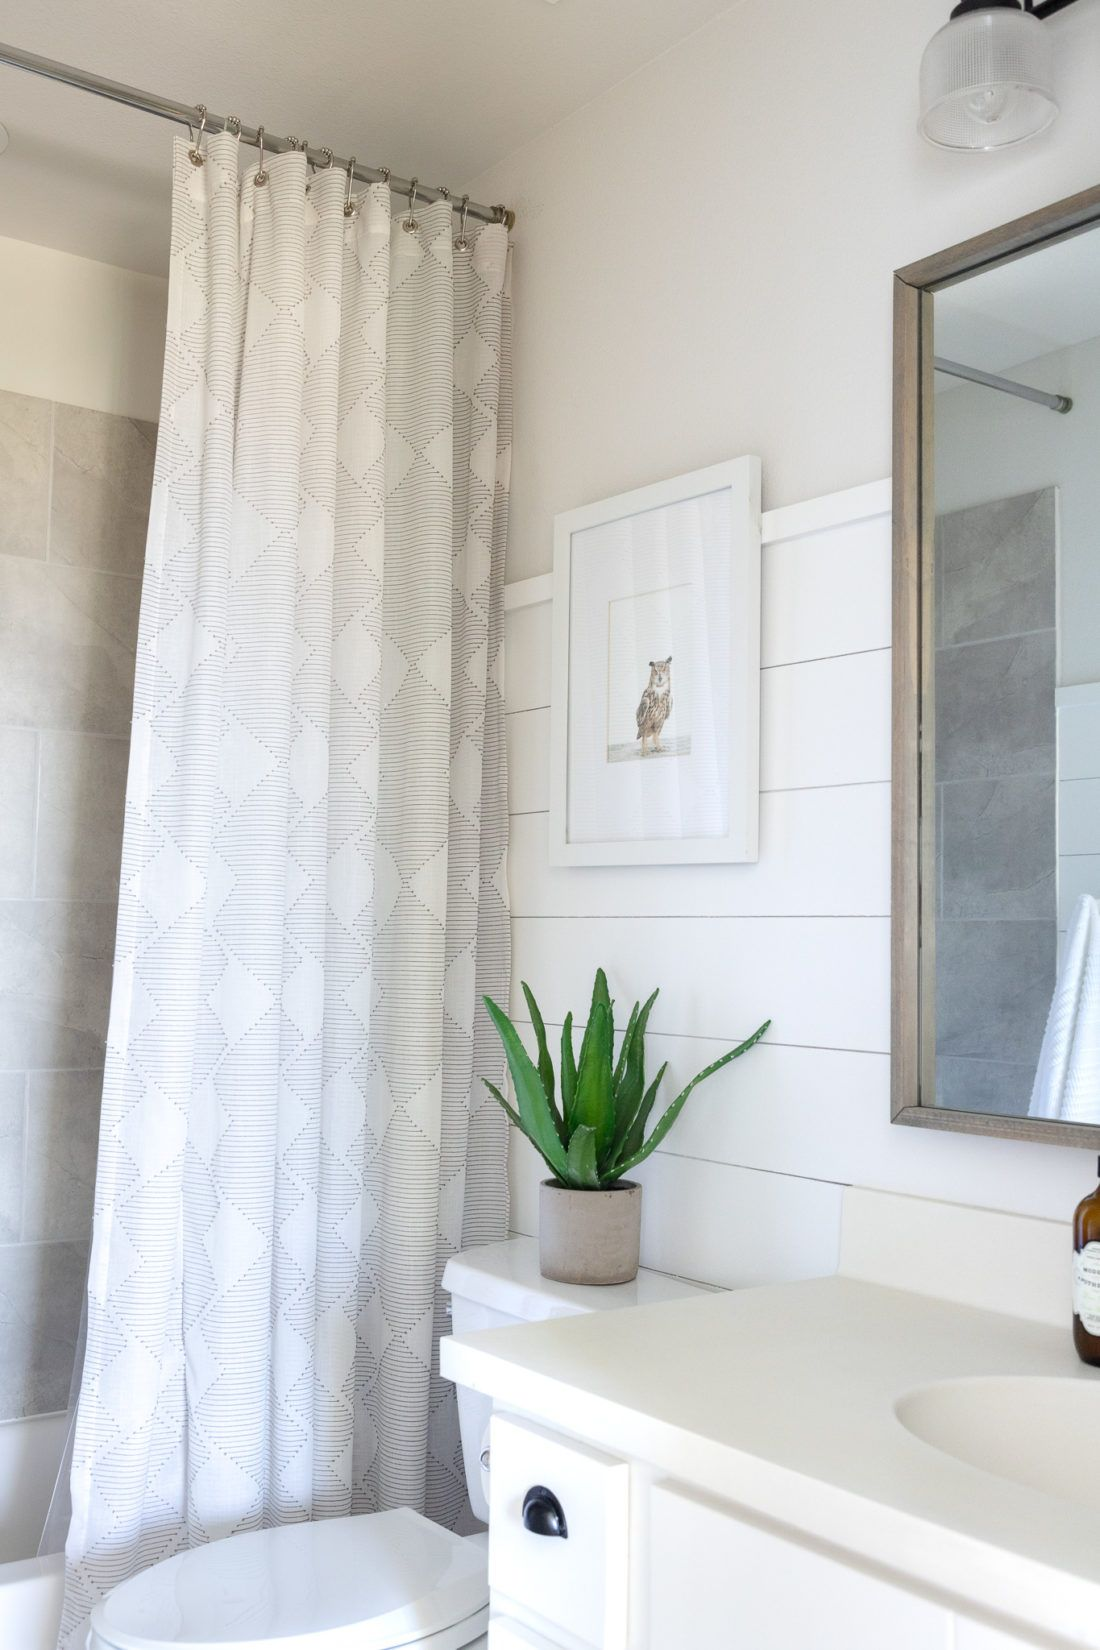 How To Make A Shower Curtain From Window Drapes Crazy Wonderful Modern Shower Curtains Diy Shower Curtain Window Drapes